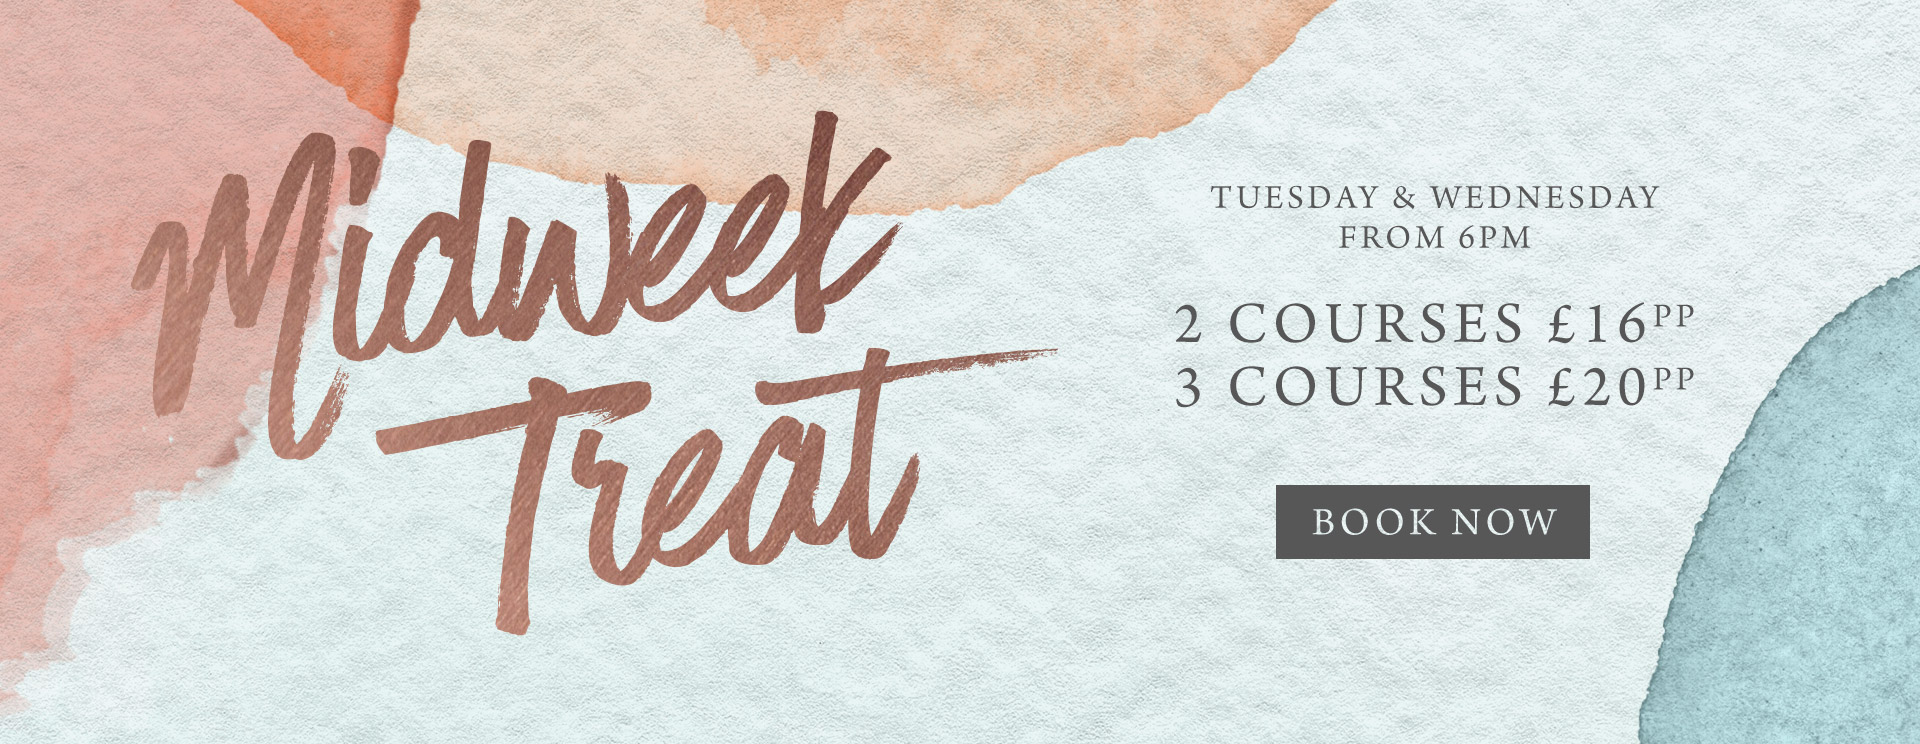 Midweek treat at One Kew Road - Book now